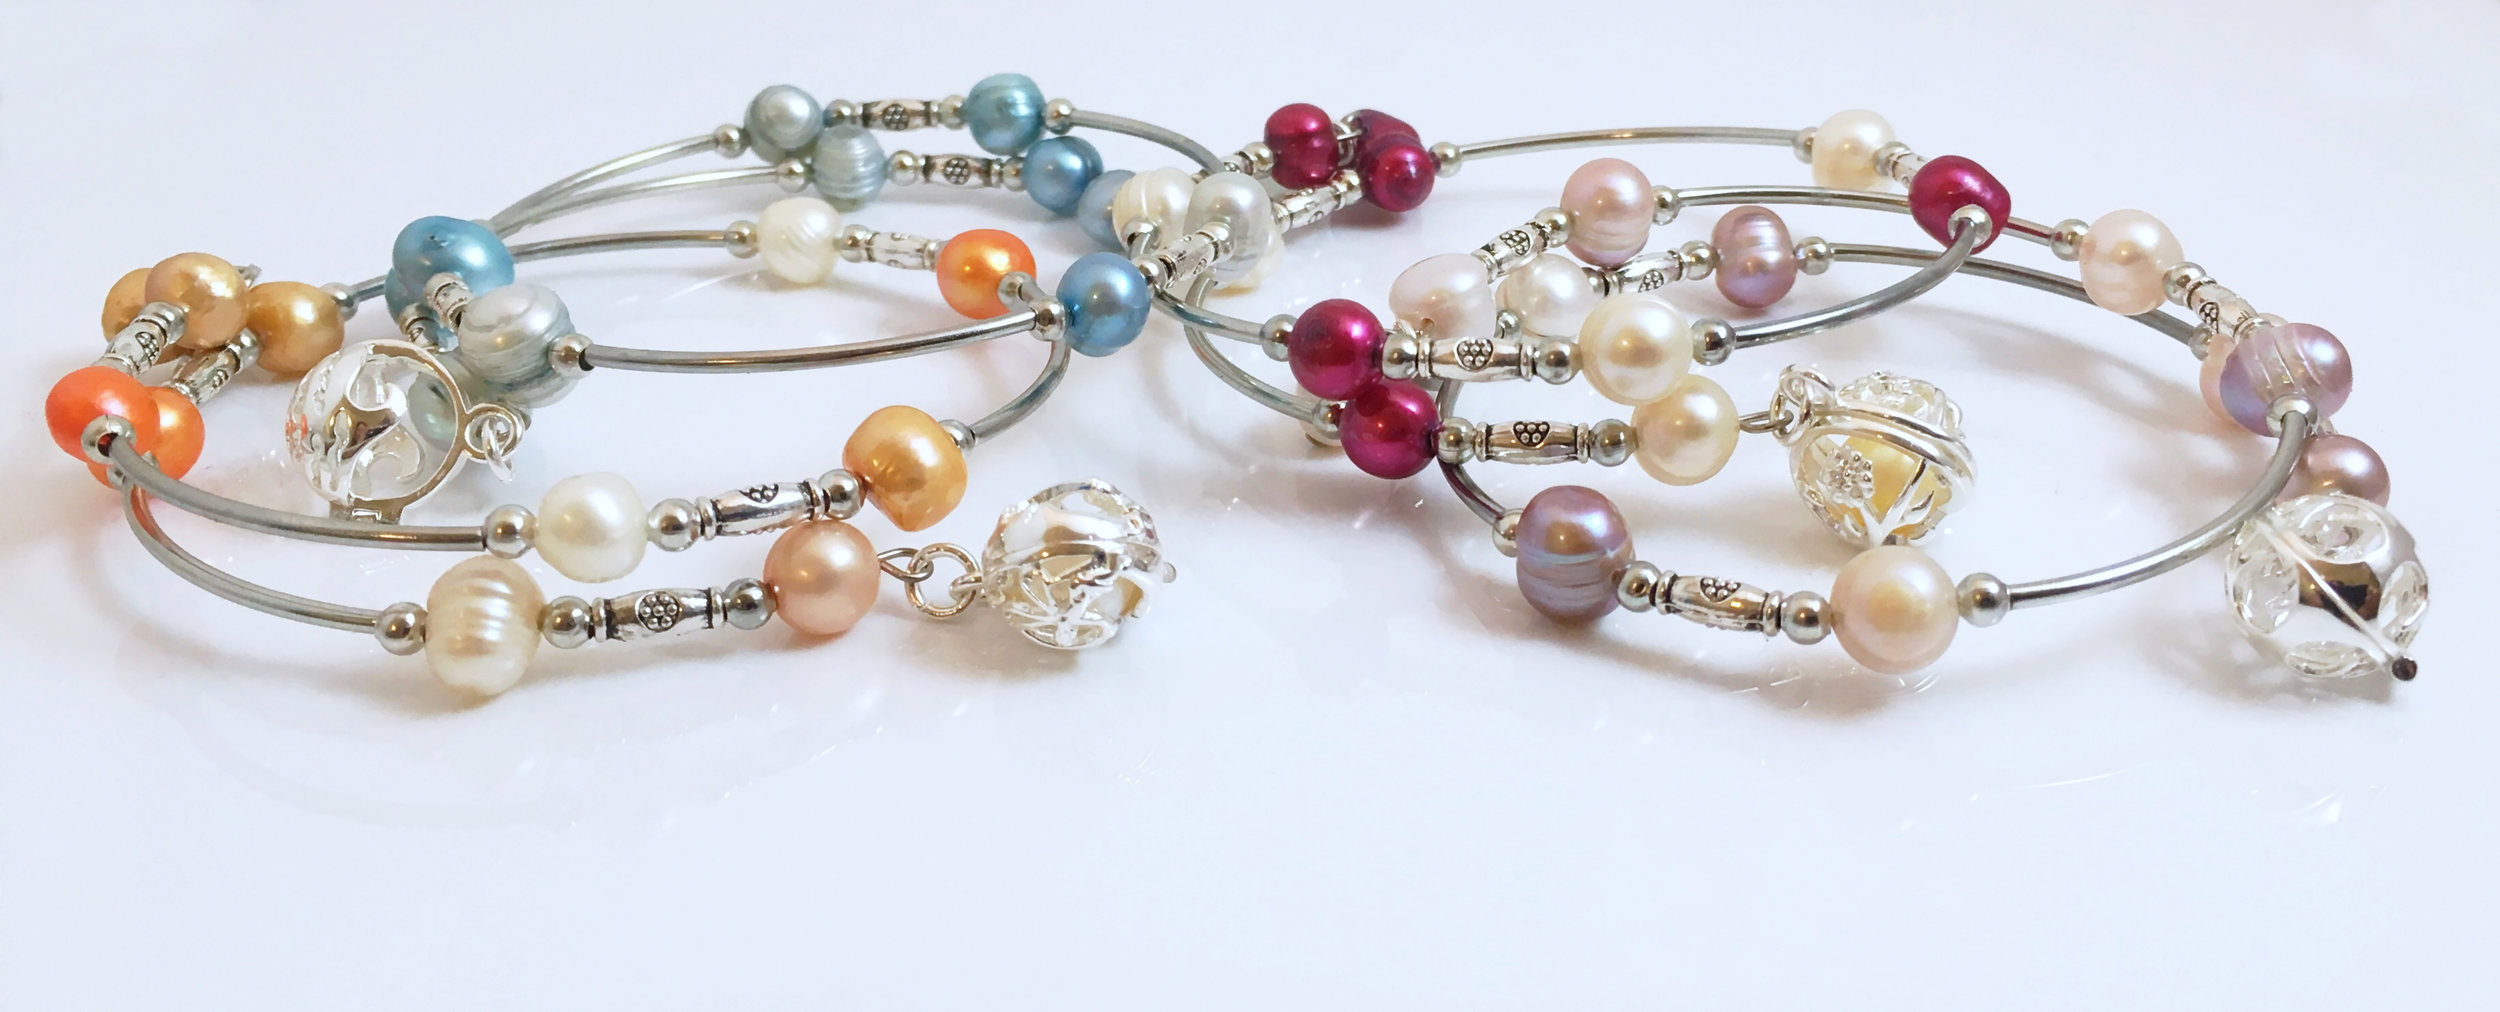 Bracelets - To Fit Any Style